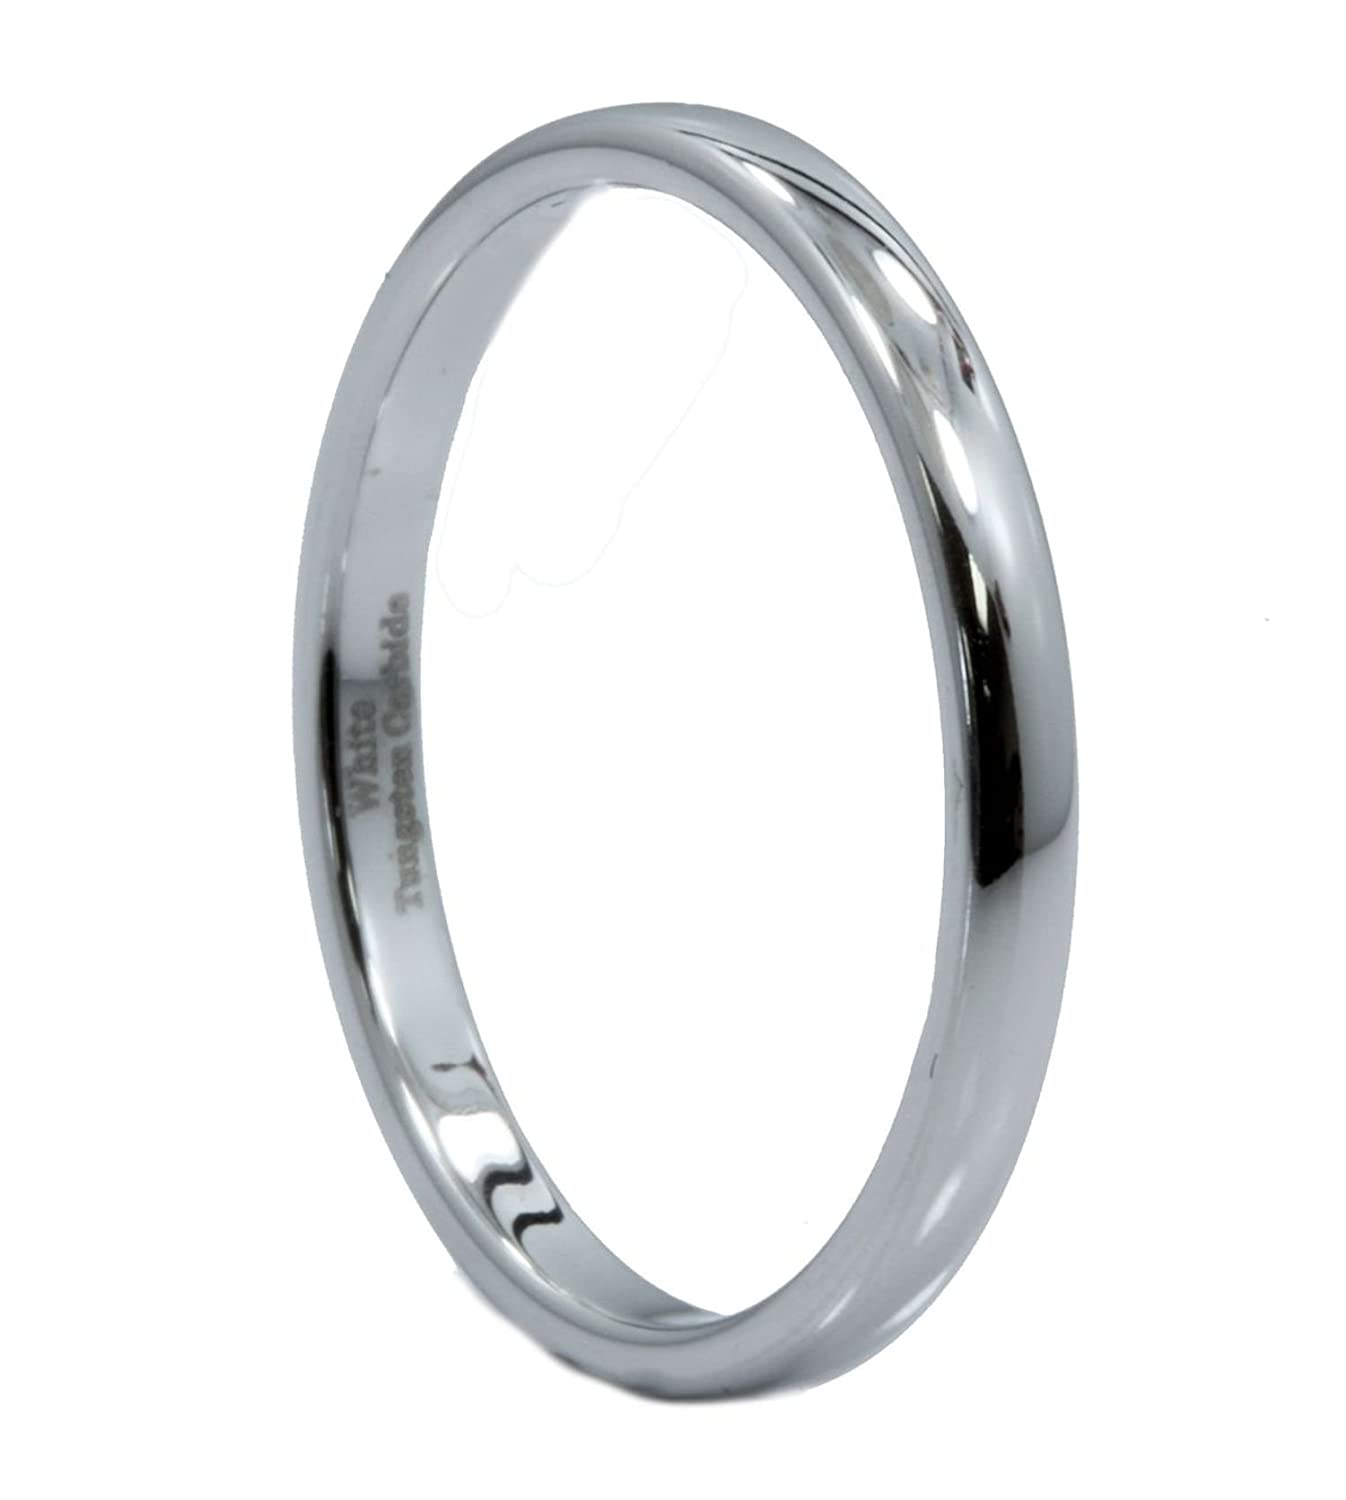 2mm to 10mm White Tungsten Carbide Polished Classic Wedding Ring MJ Metals Jewelry CWTG-174